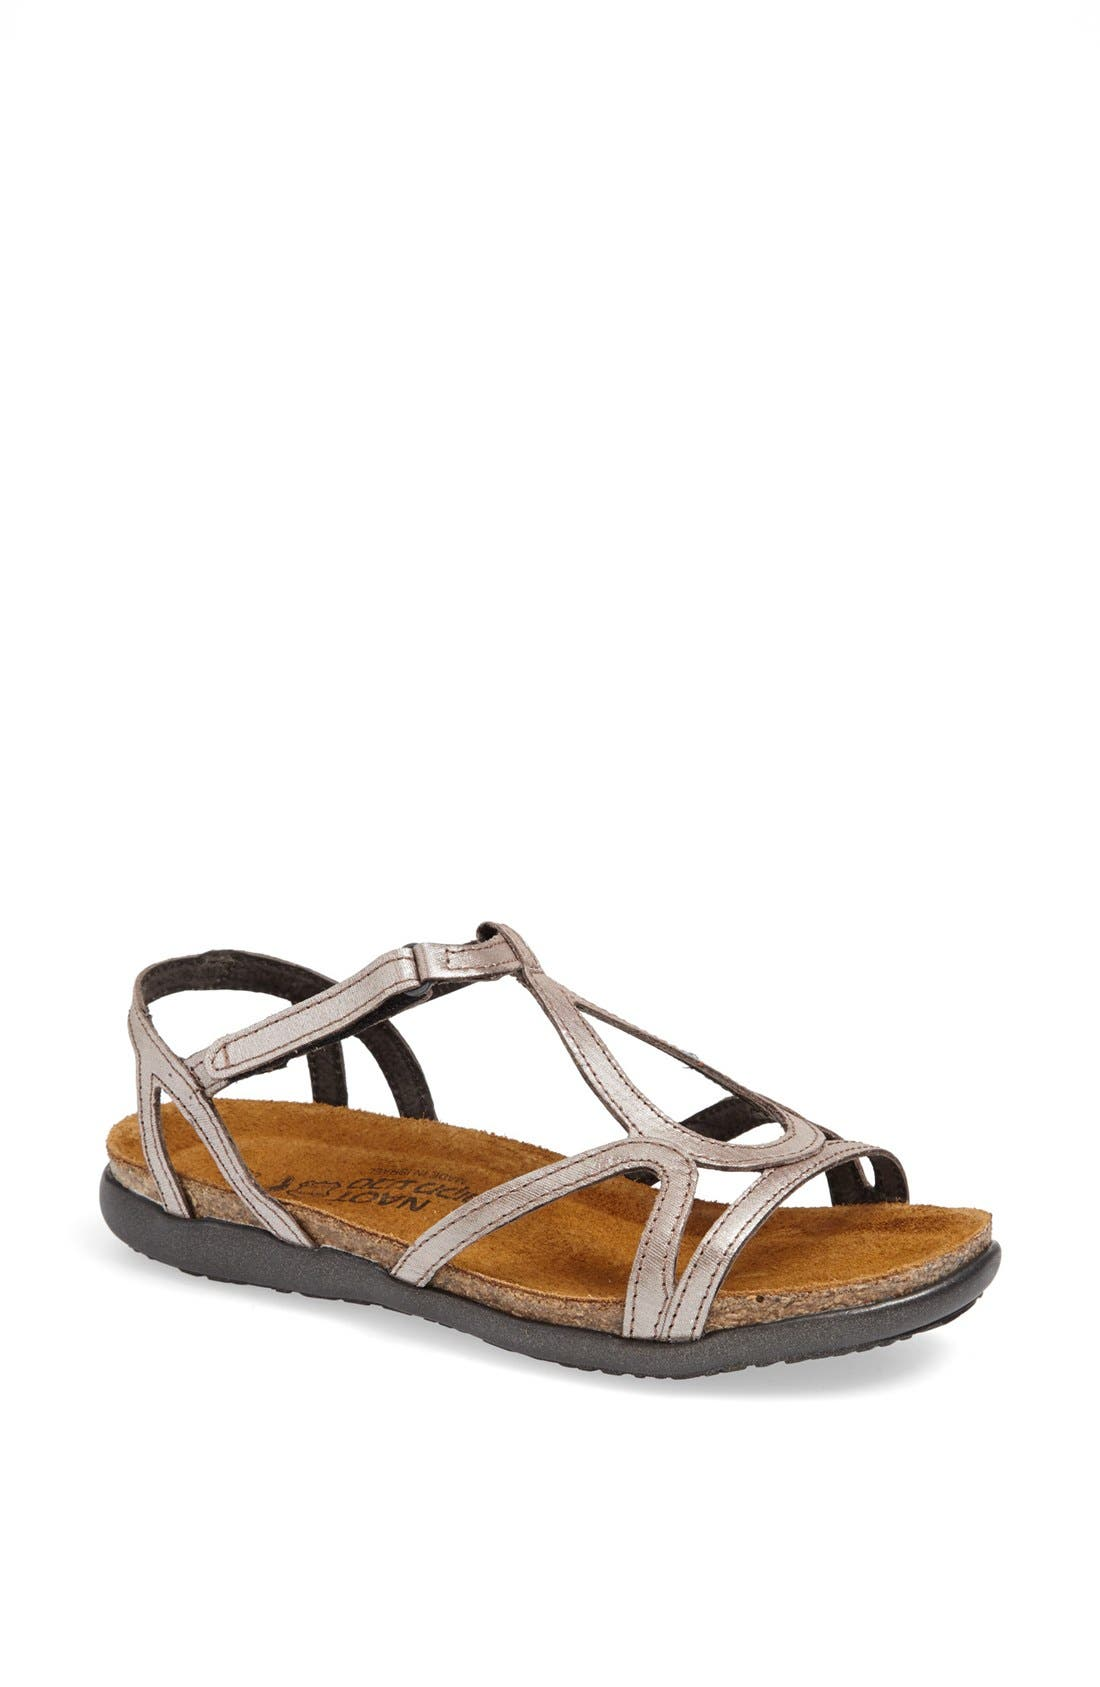 'Dorith' Sandal,                         Main,                         color, Silver Threads Leather